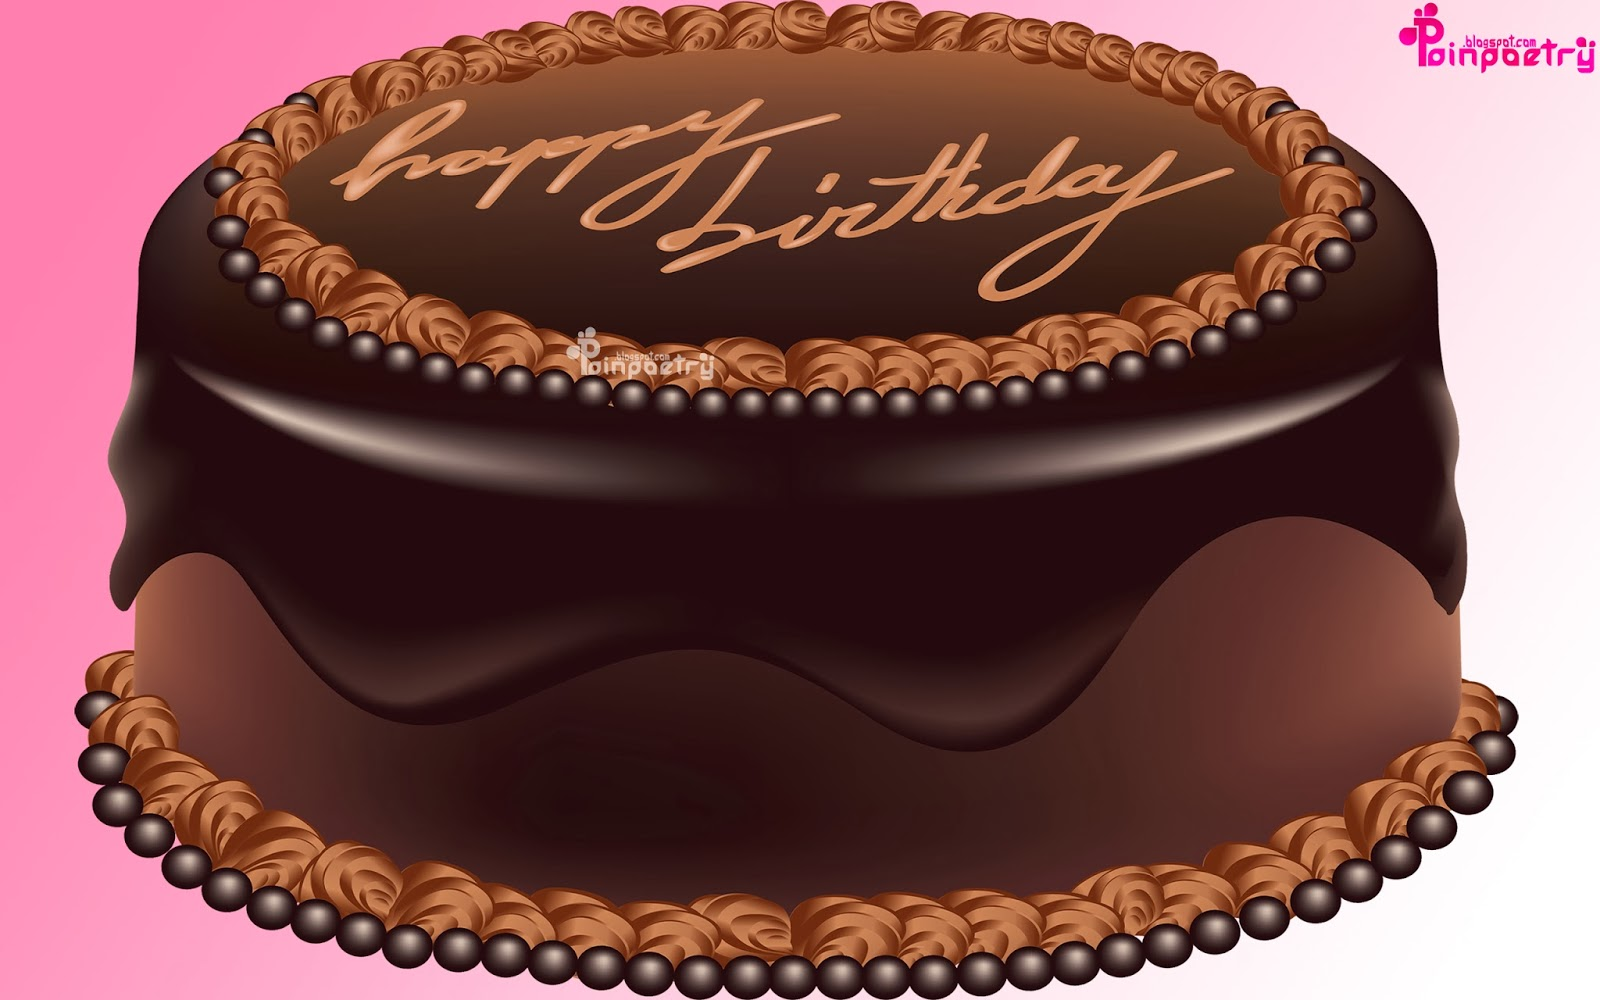 Happy-Birthday-Chocolate-Cake-Wallpaper-HD-Wide